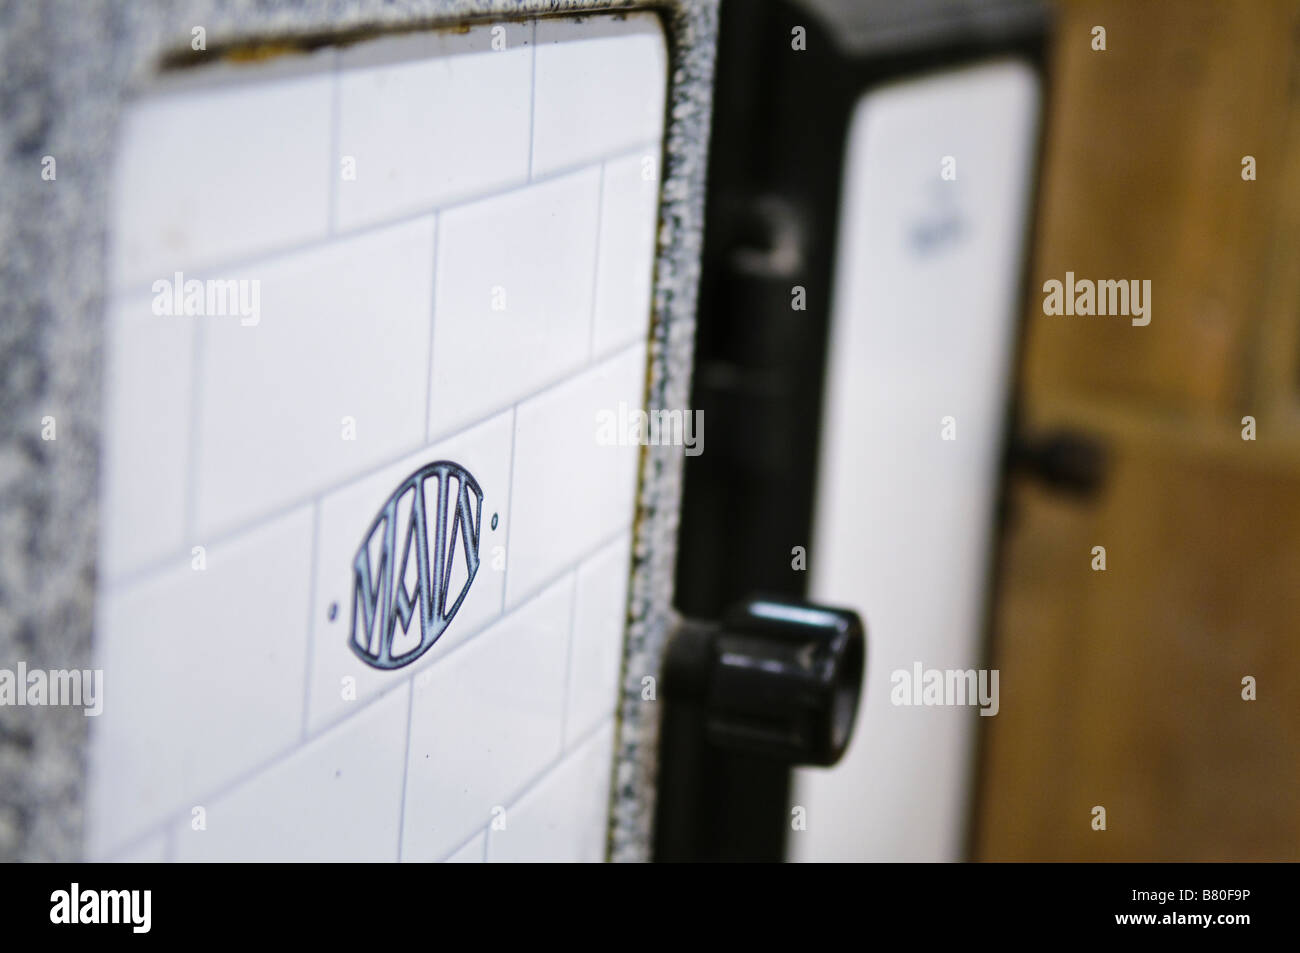 Oven door of a cast iron 'Main' gas cooker from c1900-1920. - Stock Image